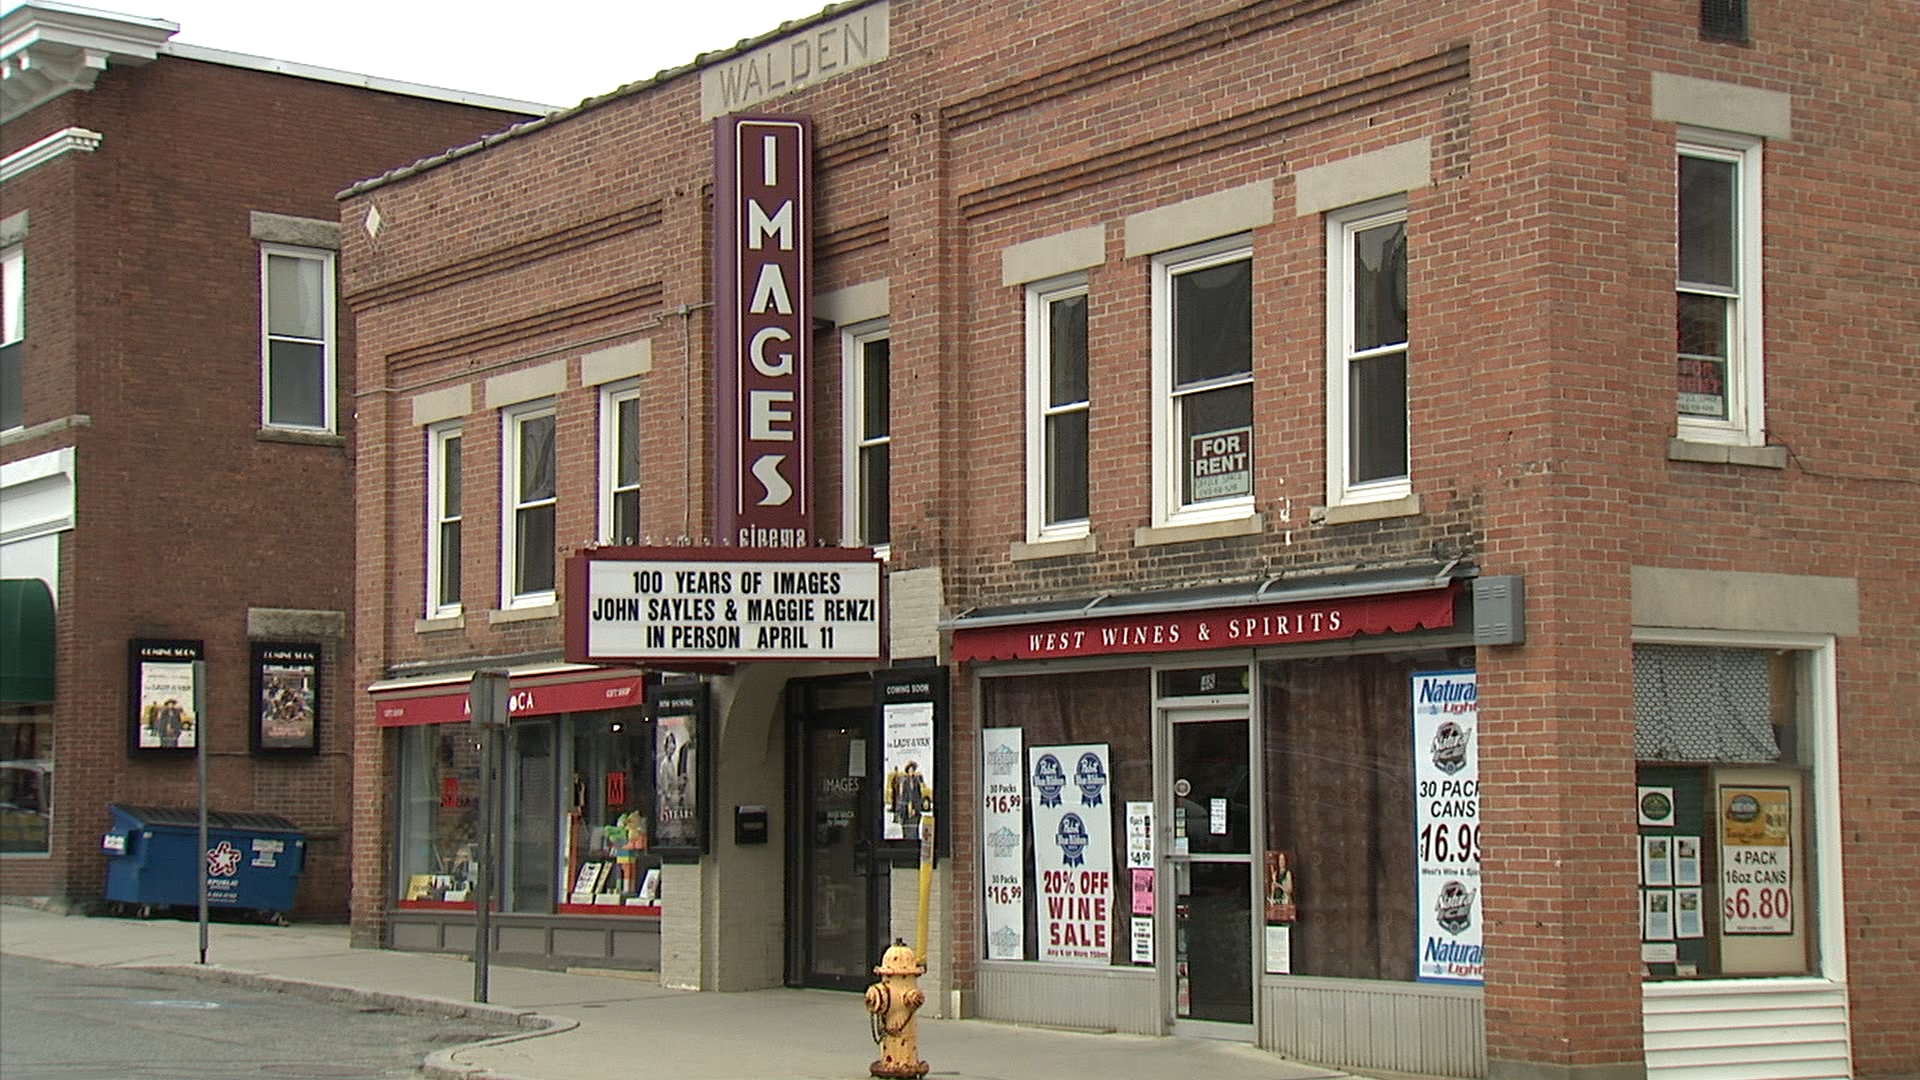 Featuring a mix of foreign, classic, & modern films, Images Theater has thrived as an independent in a world of blockbusters and cinemaplexes for 100 years.